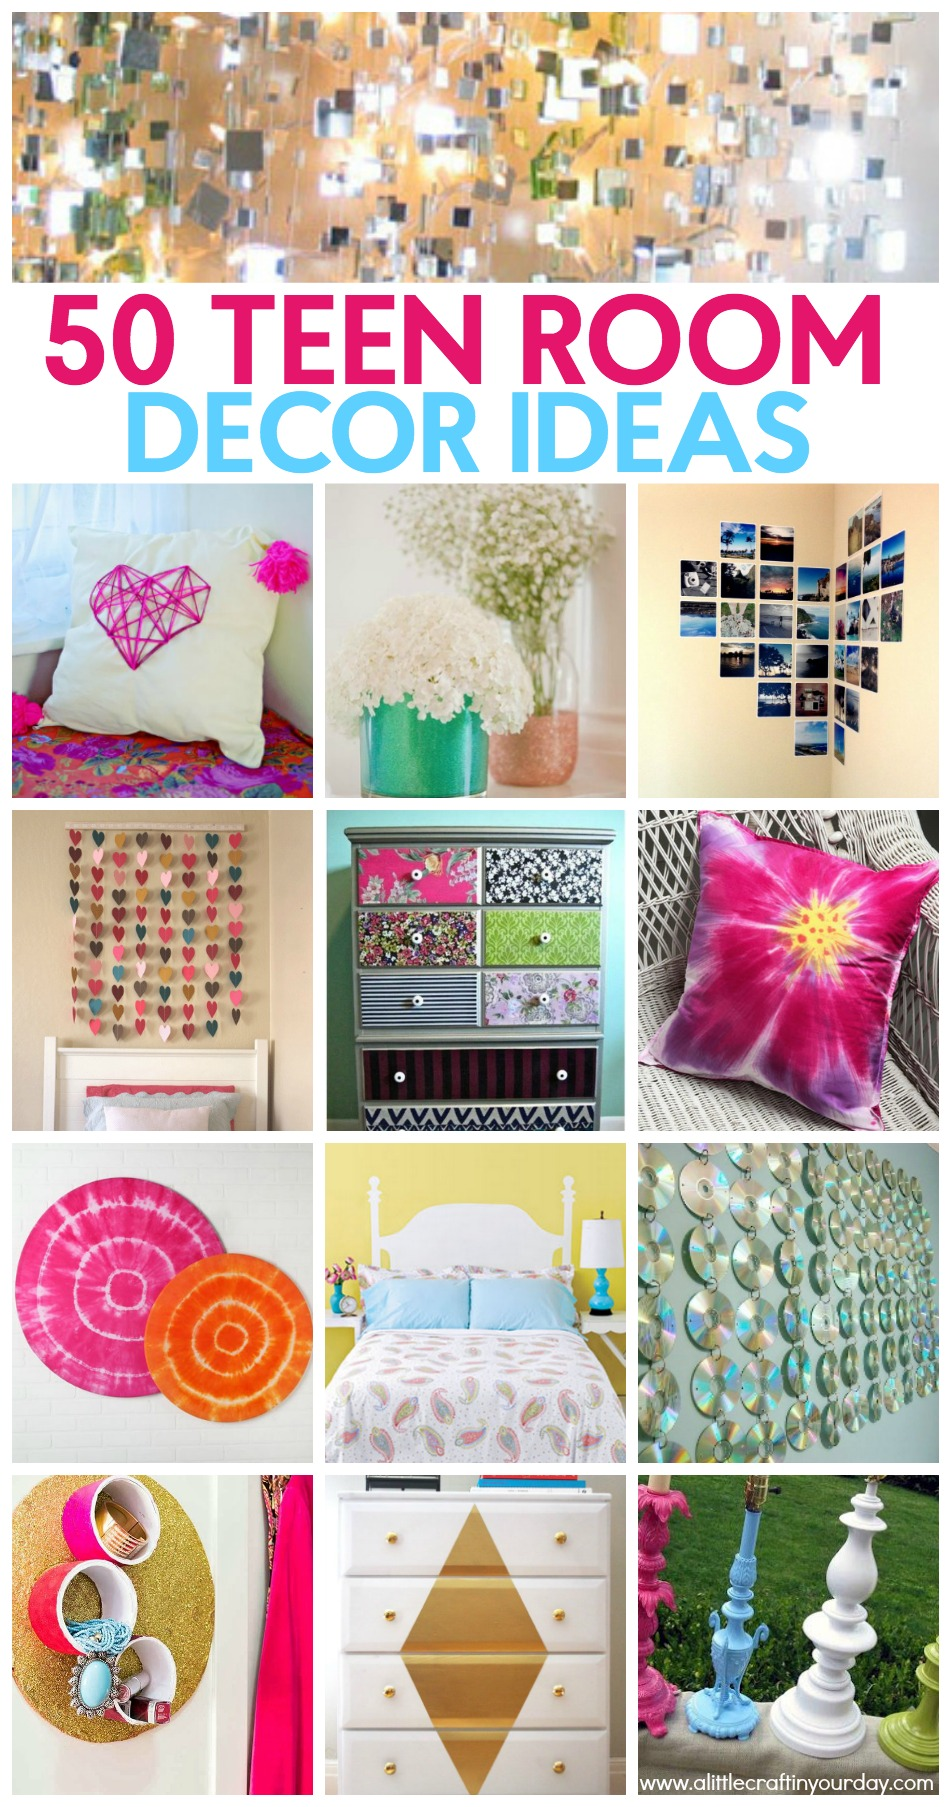 50 teen girl room decor ideas a little craft in your day - Bedroom wall decoration ideas for teens ...